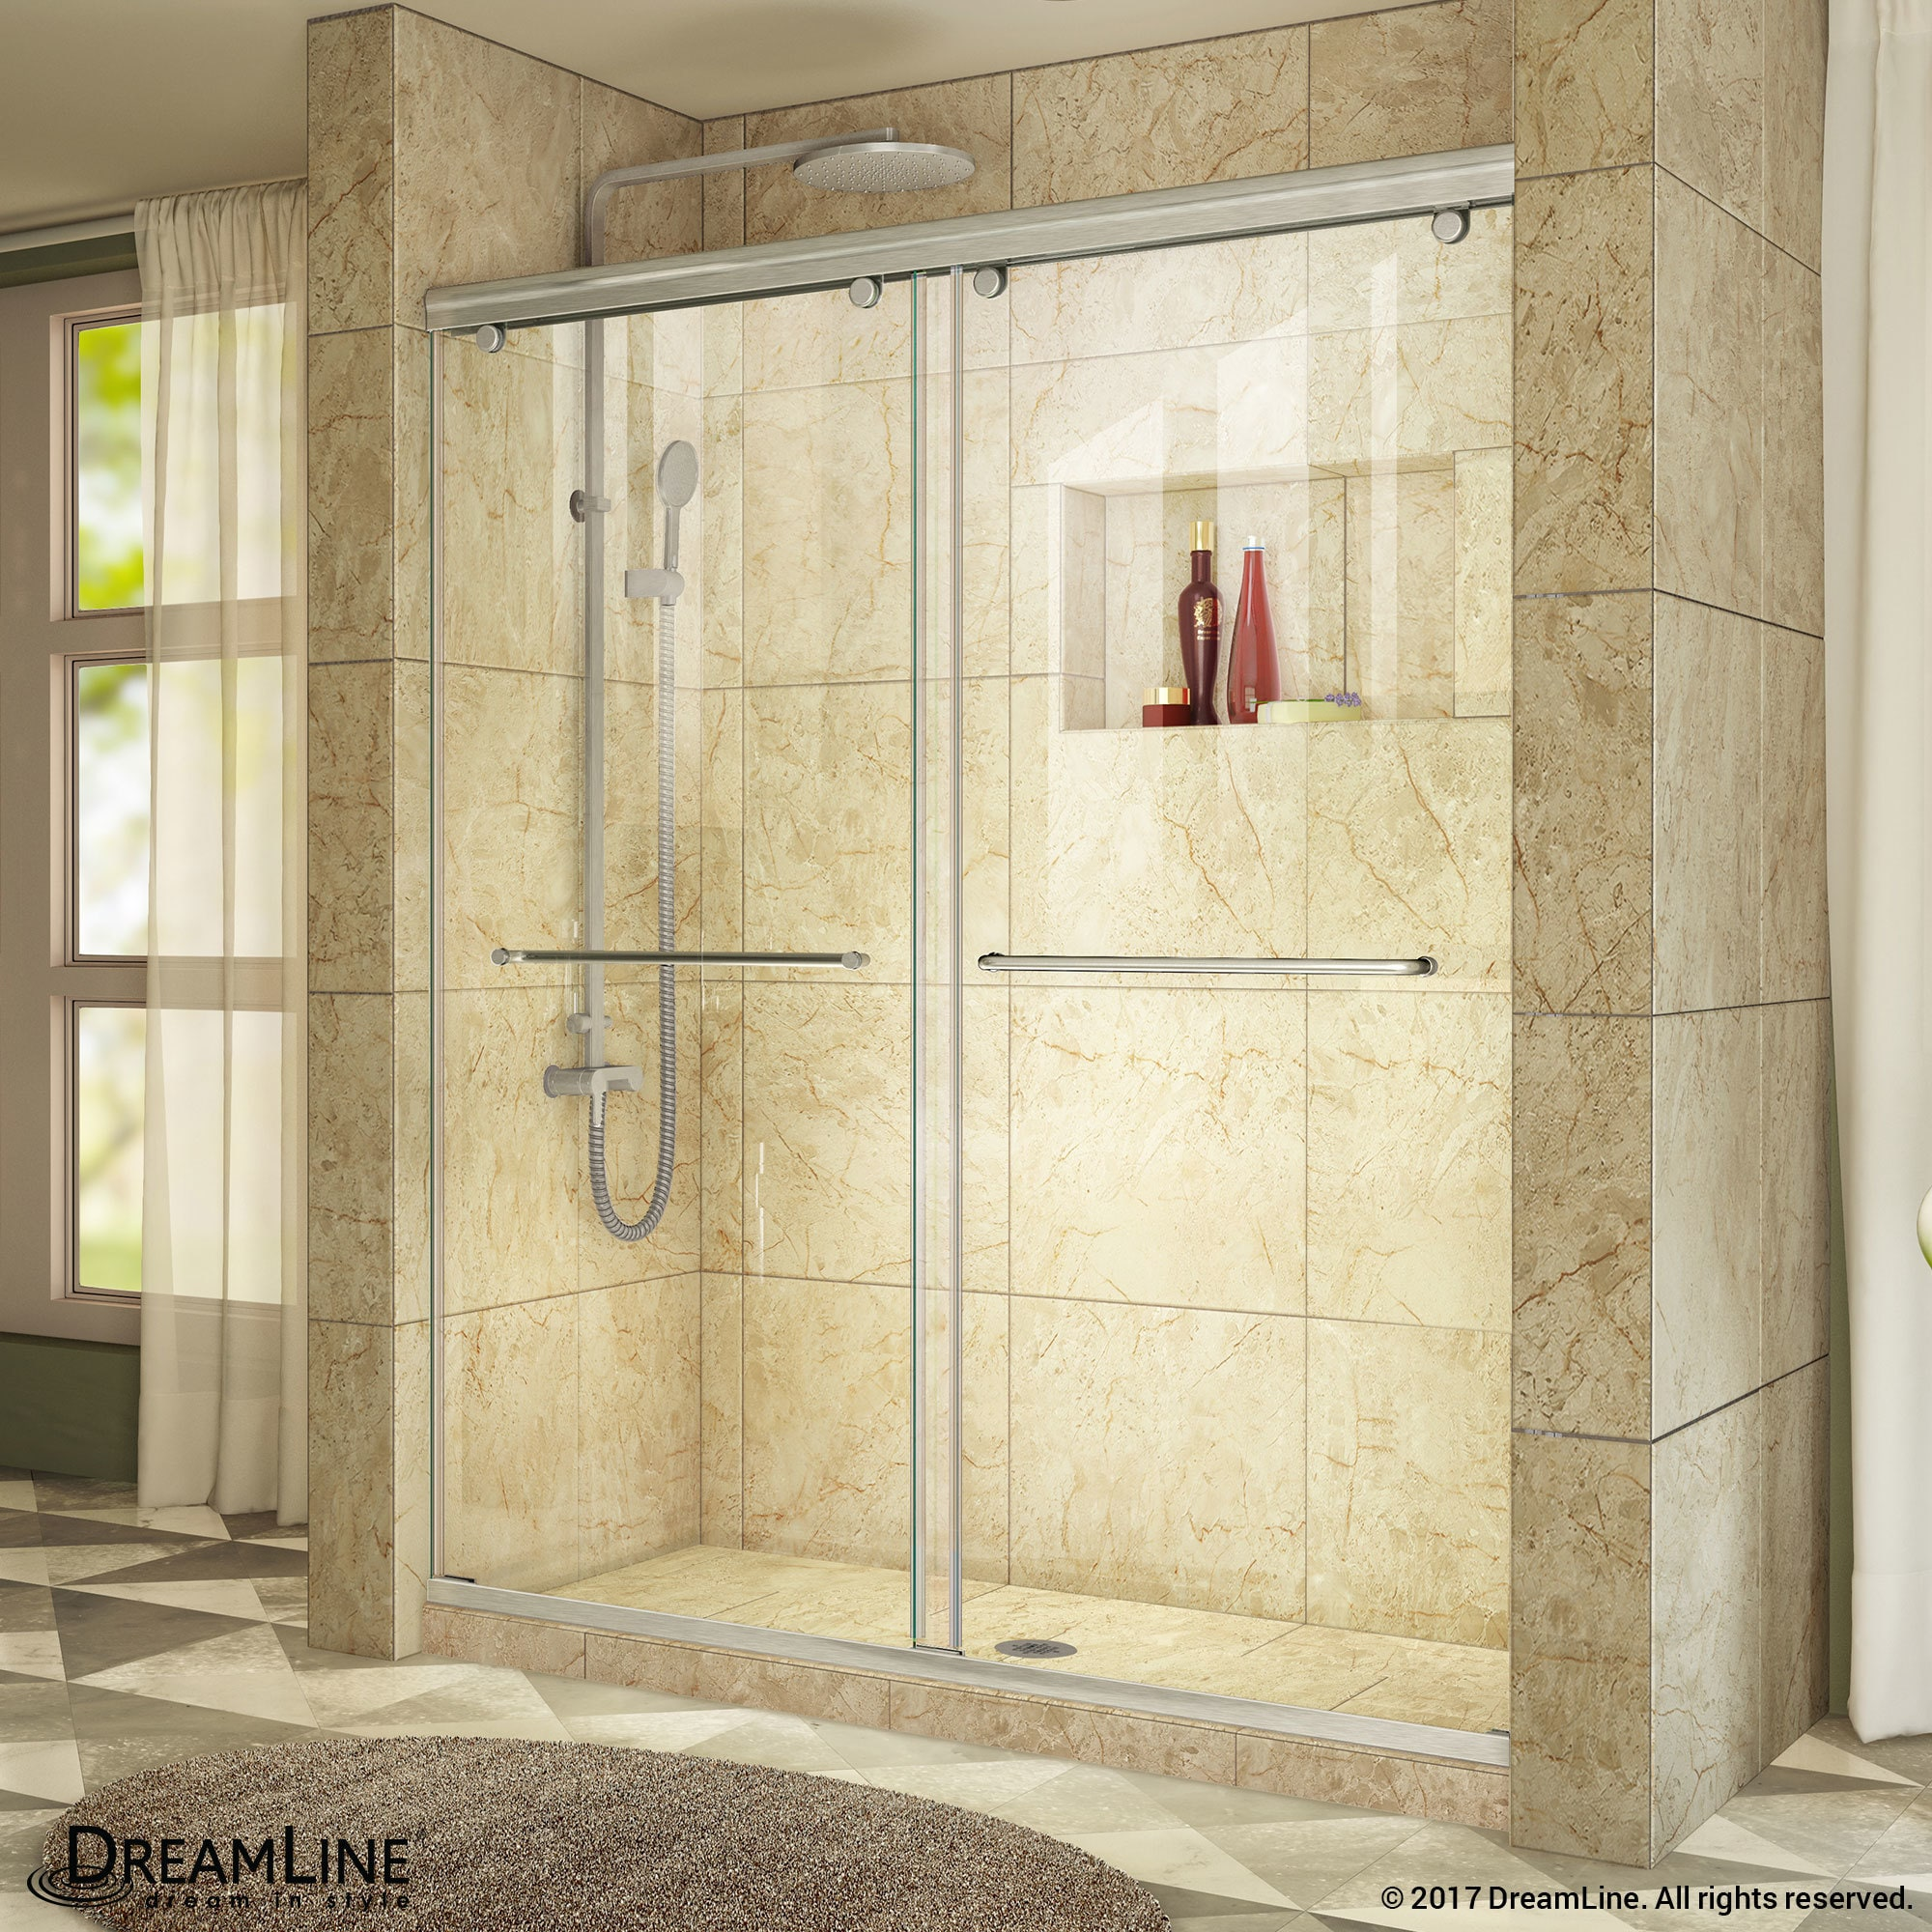 Shop Dreamline Charisma Sliding Shower Door 56 60 In W X 76 In H